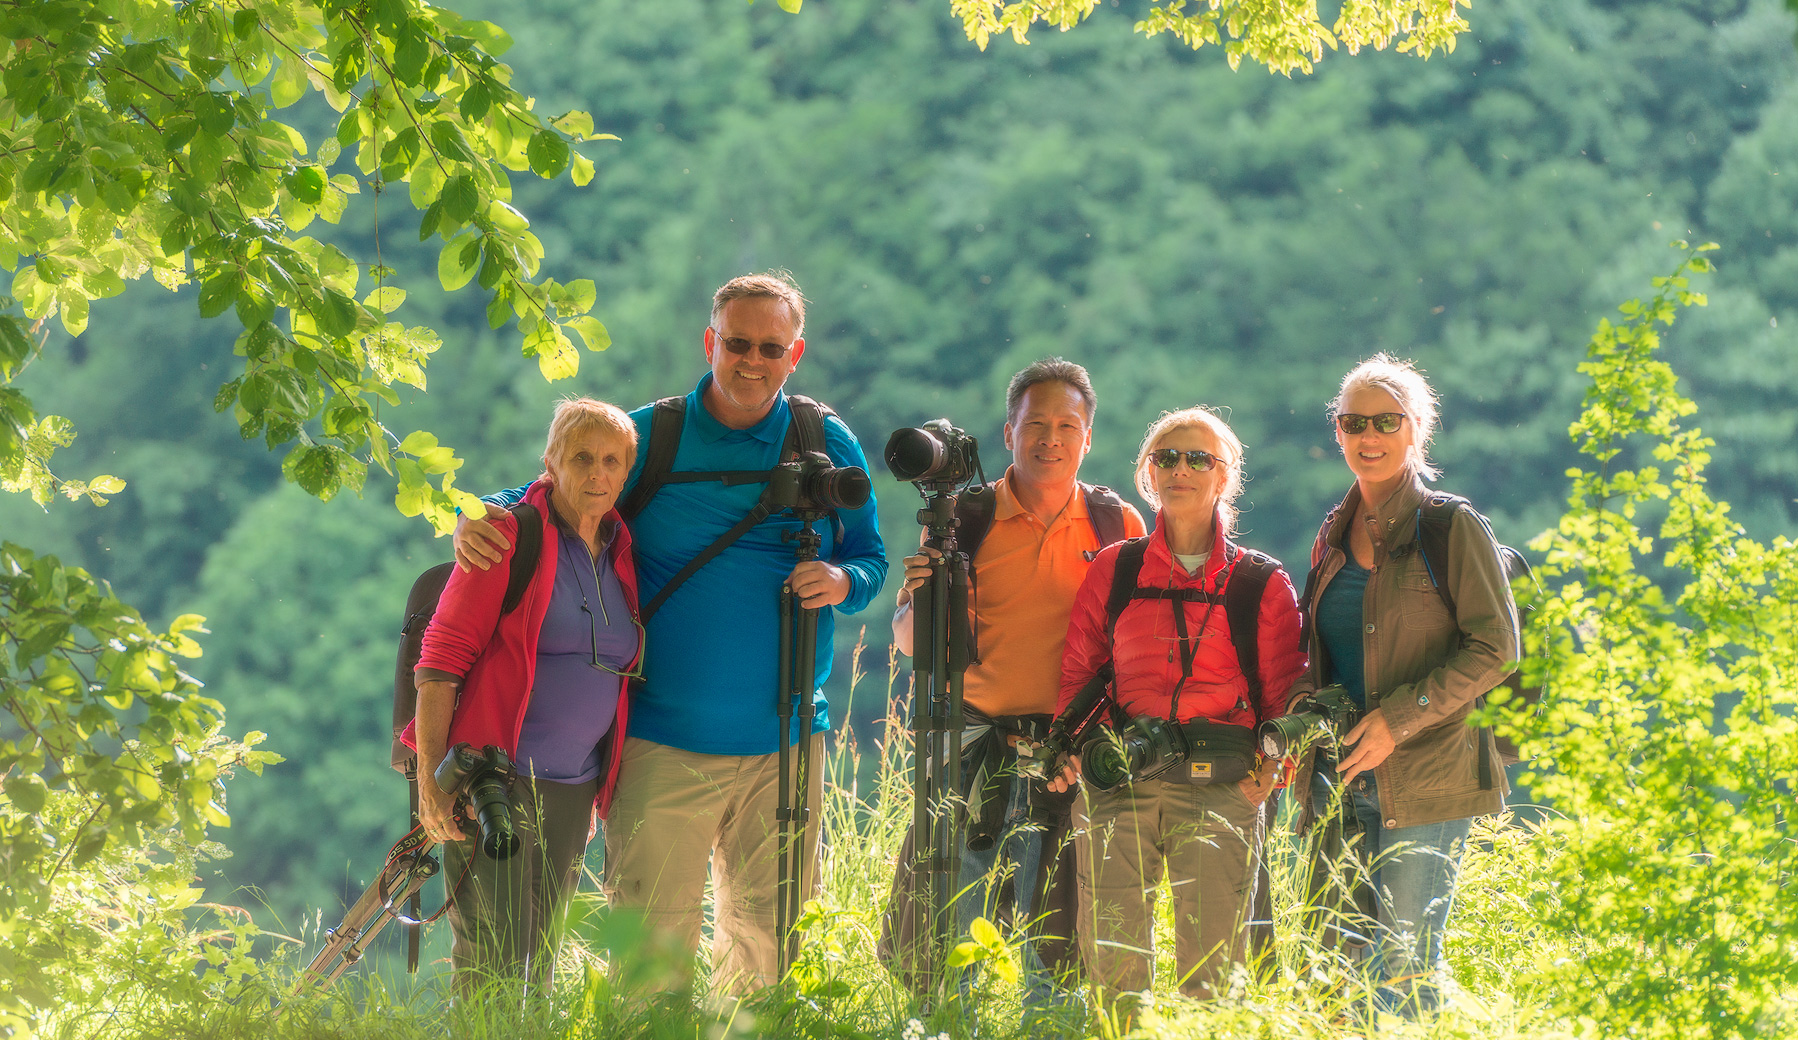 Photography workshop at Plitvice Lakes, Croatia